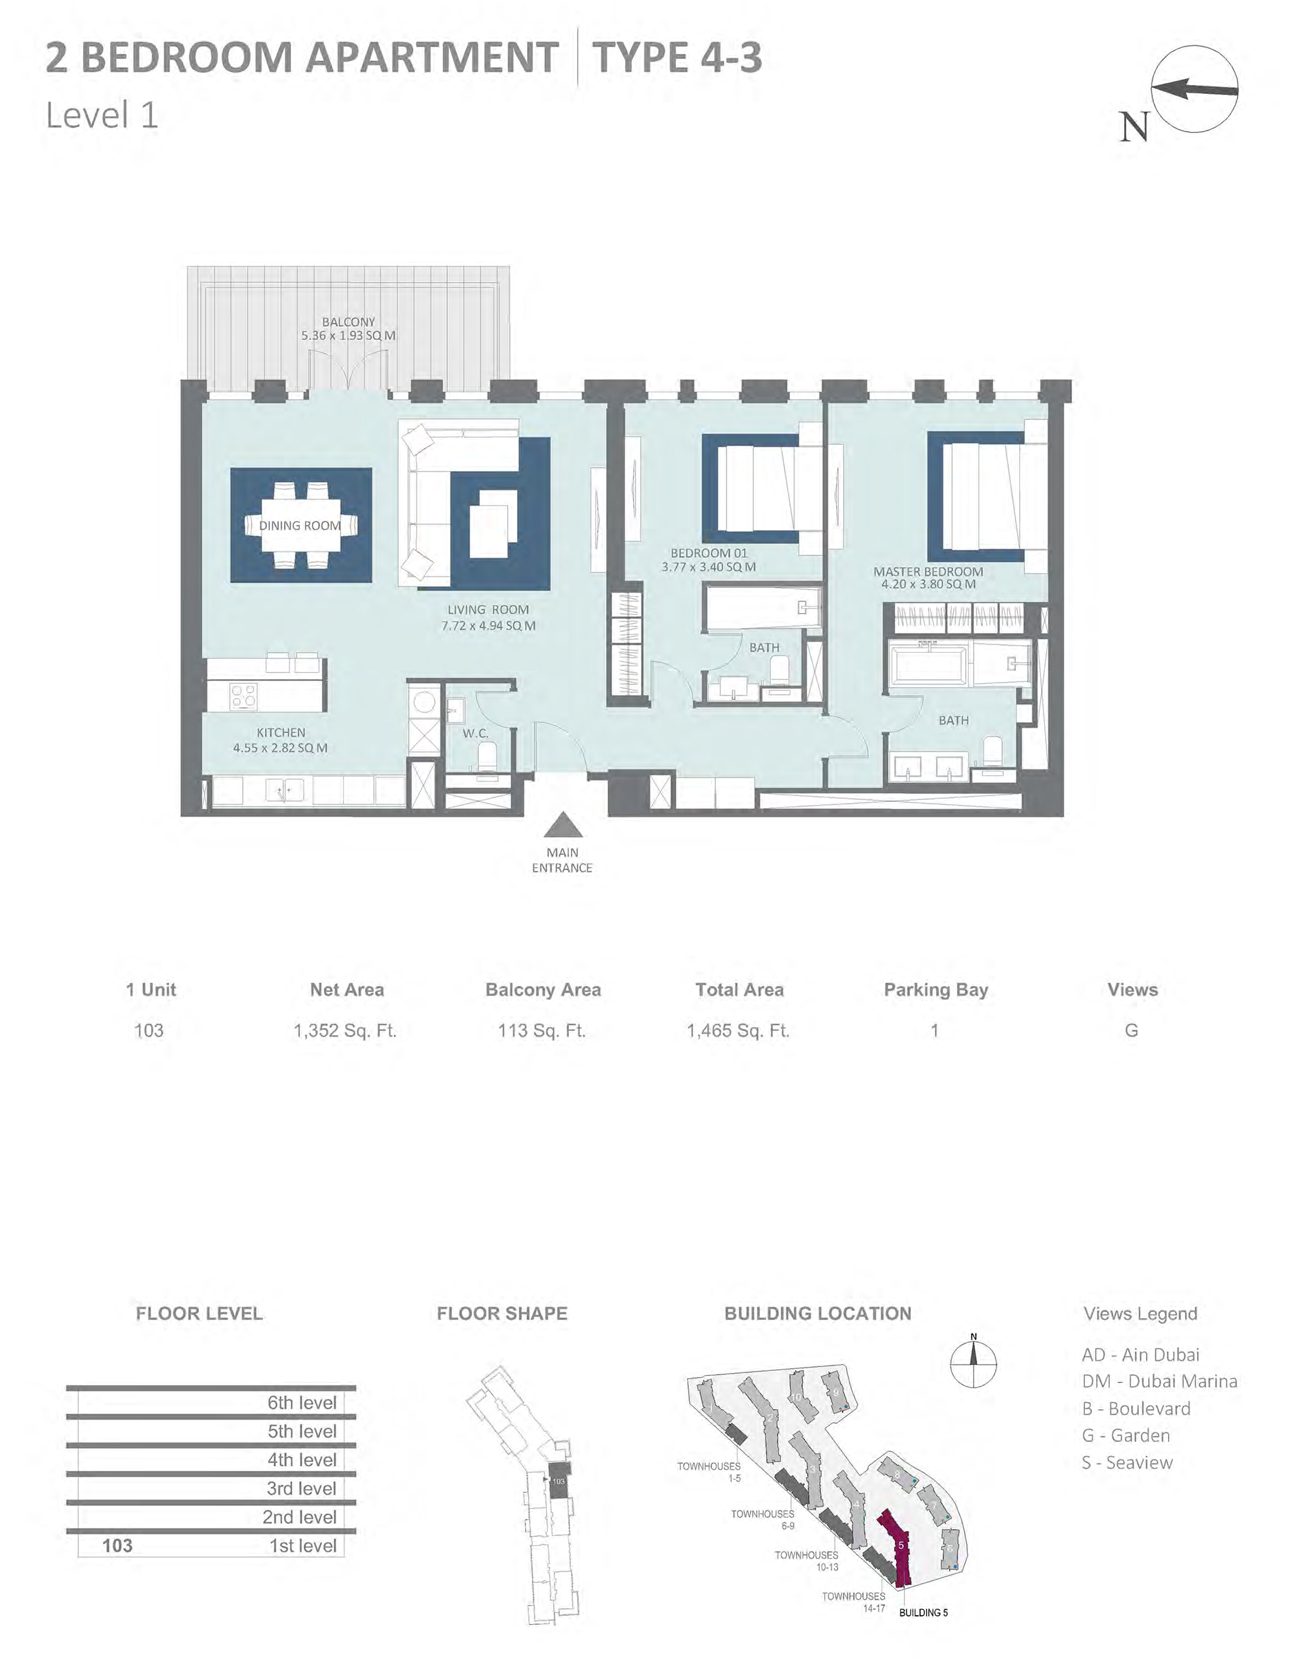 Building 5 - 2 Bedroom Type 4-3 Level 1 , Size 1352    sq. ft.